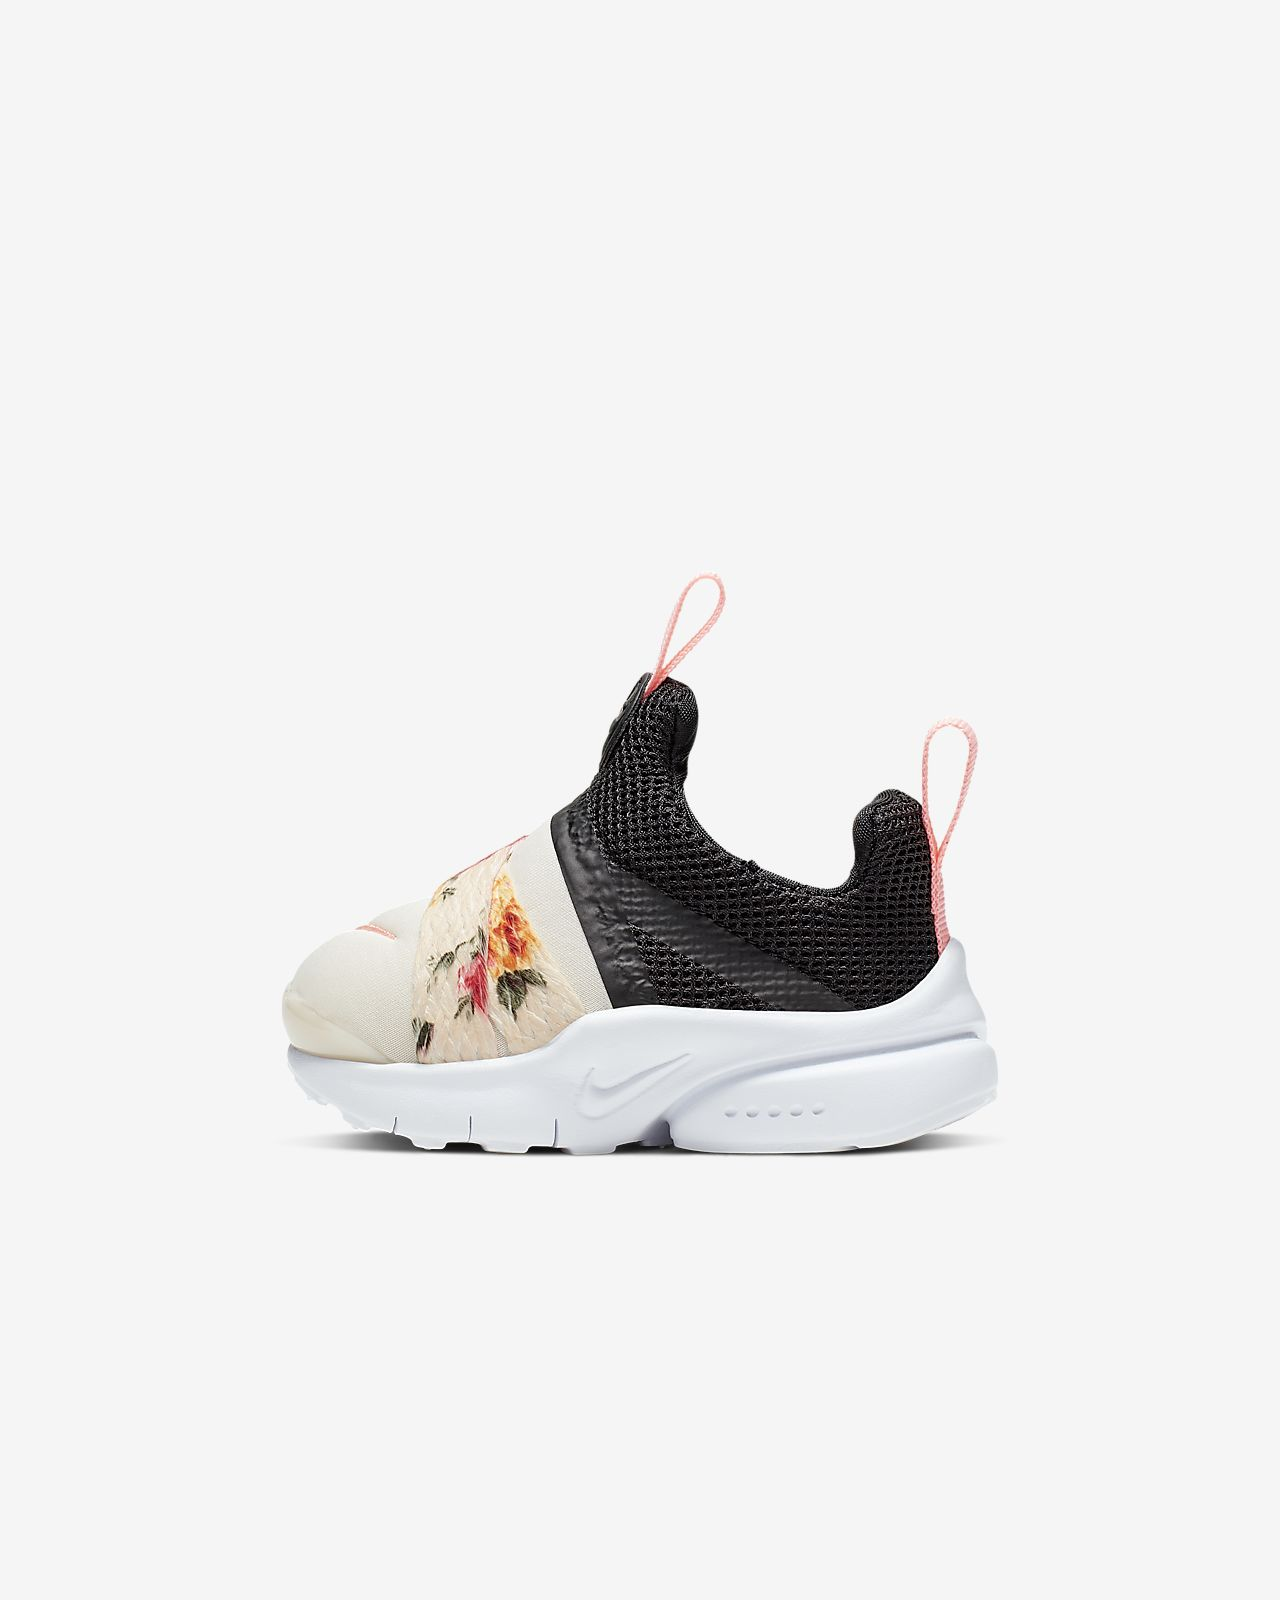 Nike Presto Extreme Vintage Floral Infant/Toddler Shoe